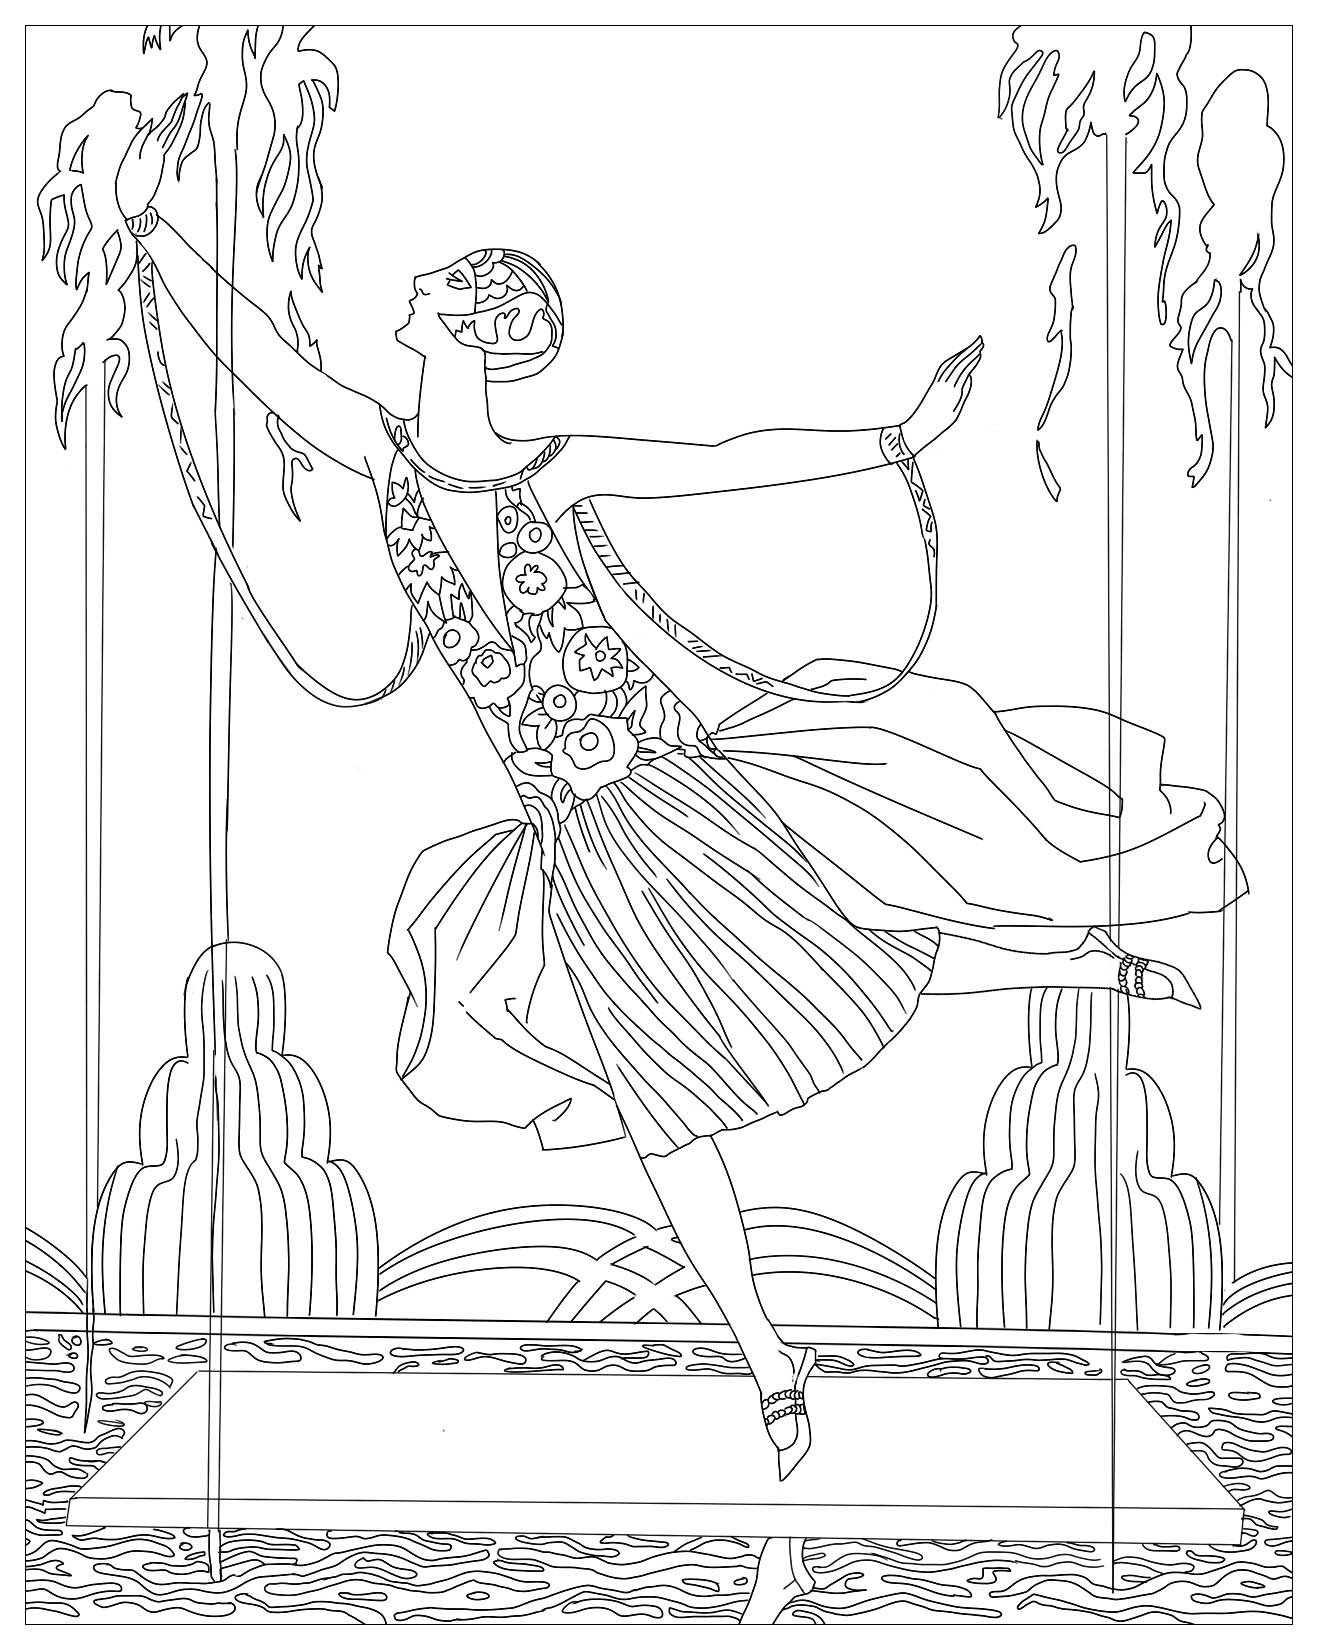 Coloring page created from an Art Déco illustration by George Barbier : Dancer with water jets